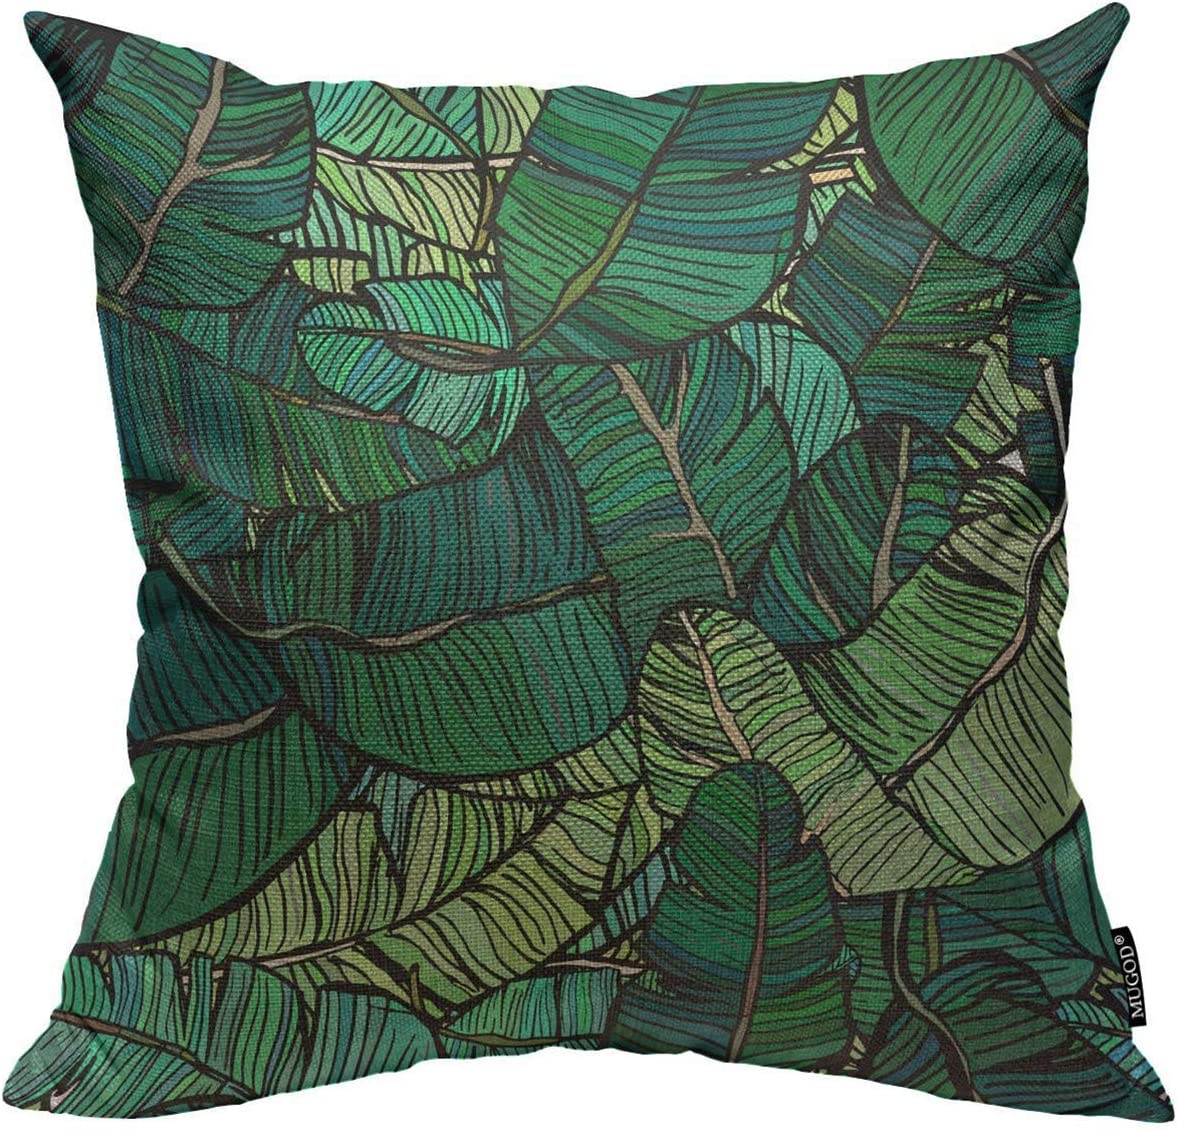 DeeDaa Throw Pillow Cover Banana Tree Leaves Green Colourful Palm Retro Style Aloha Blooming Bold Home Decor Square Pillow Case for Men Women Bedroom Livingroom Cushion Cover 18x18 Inch